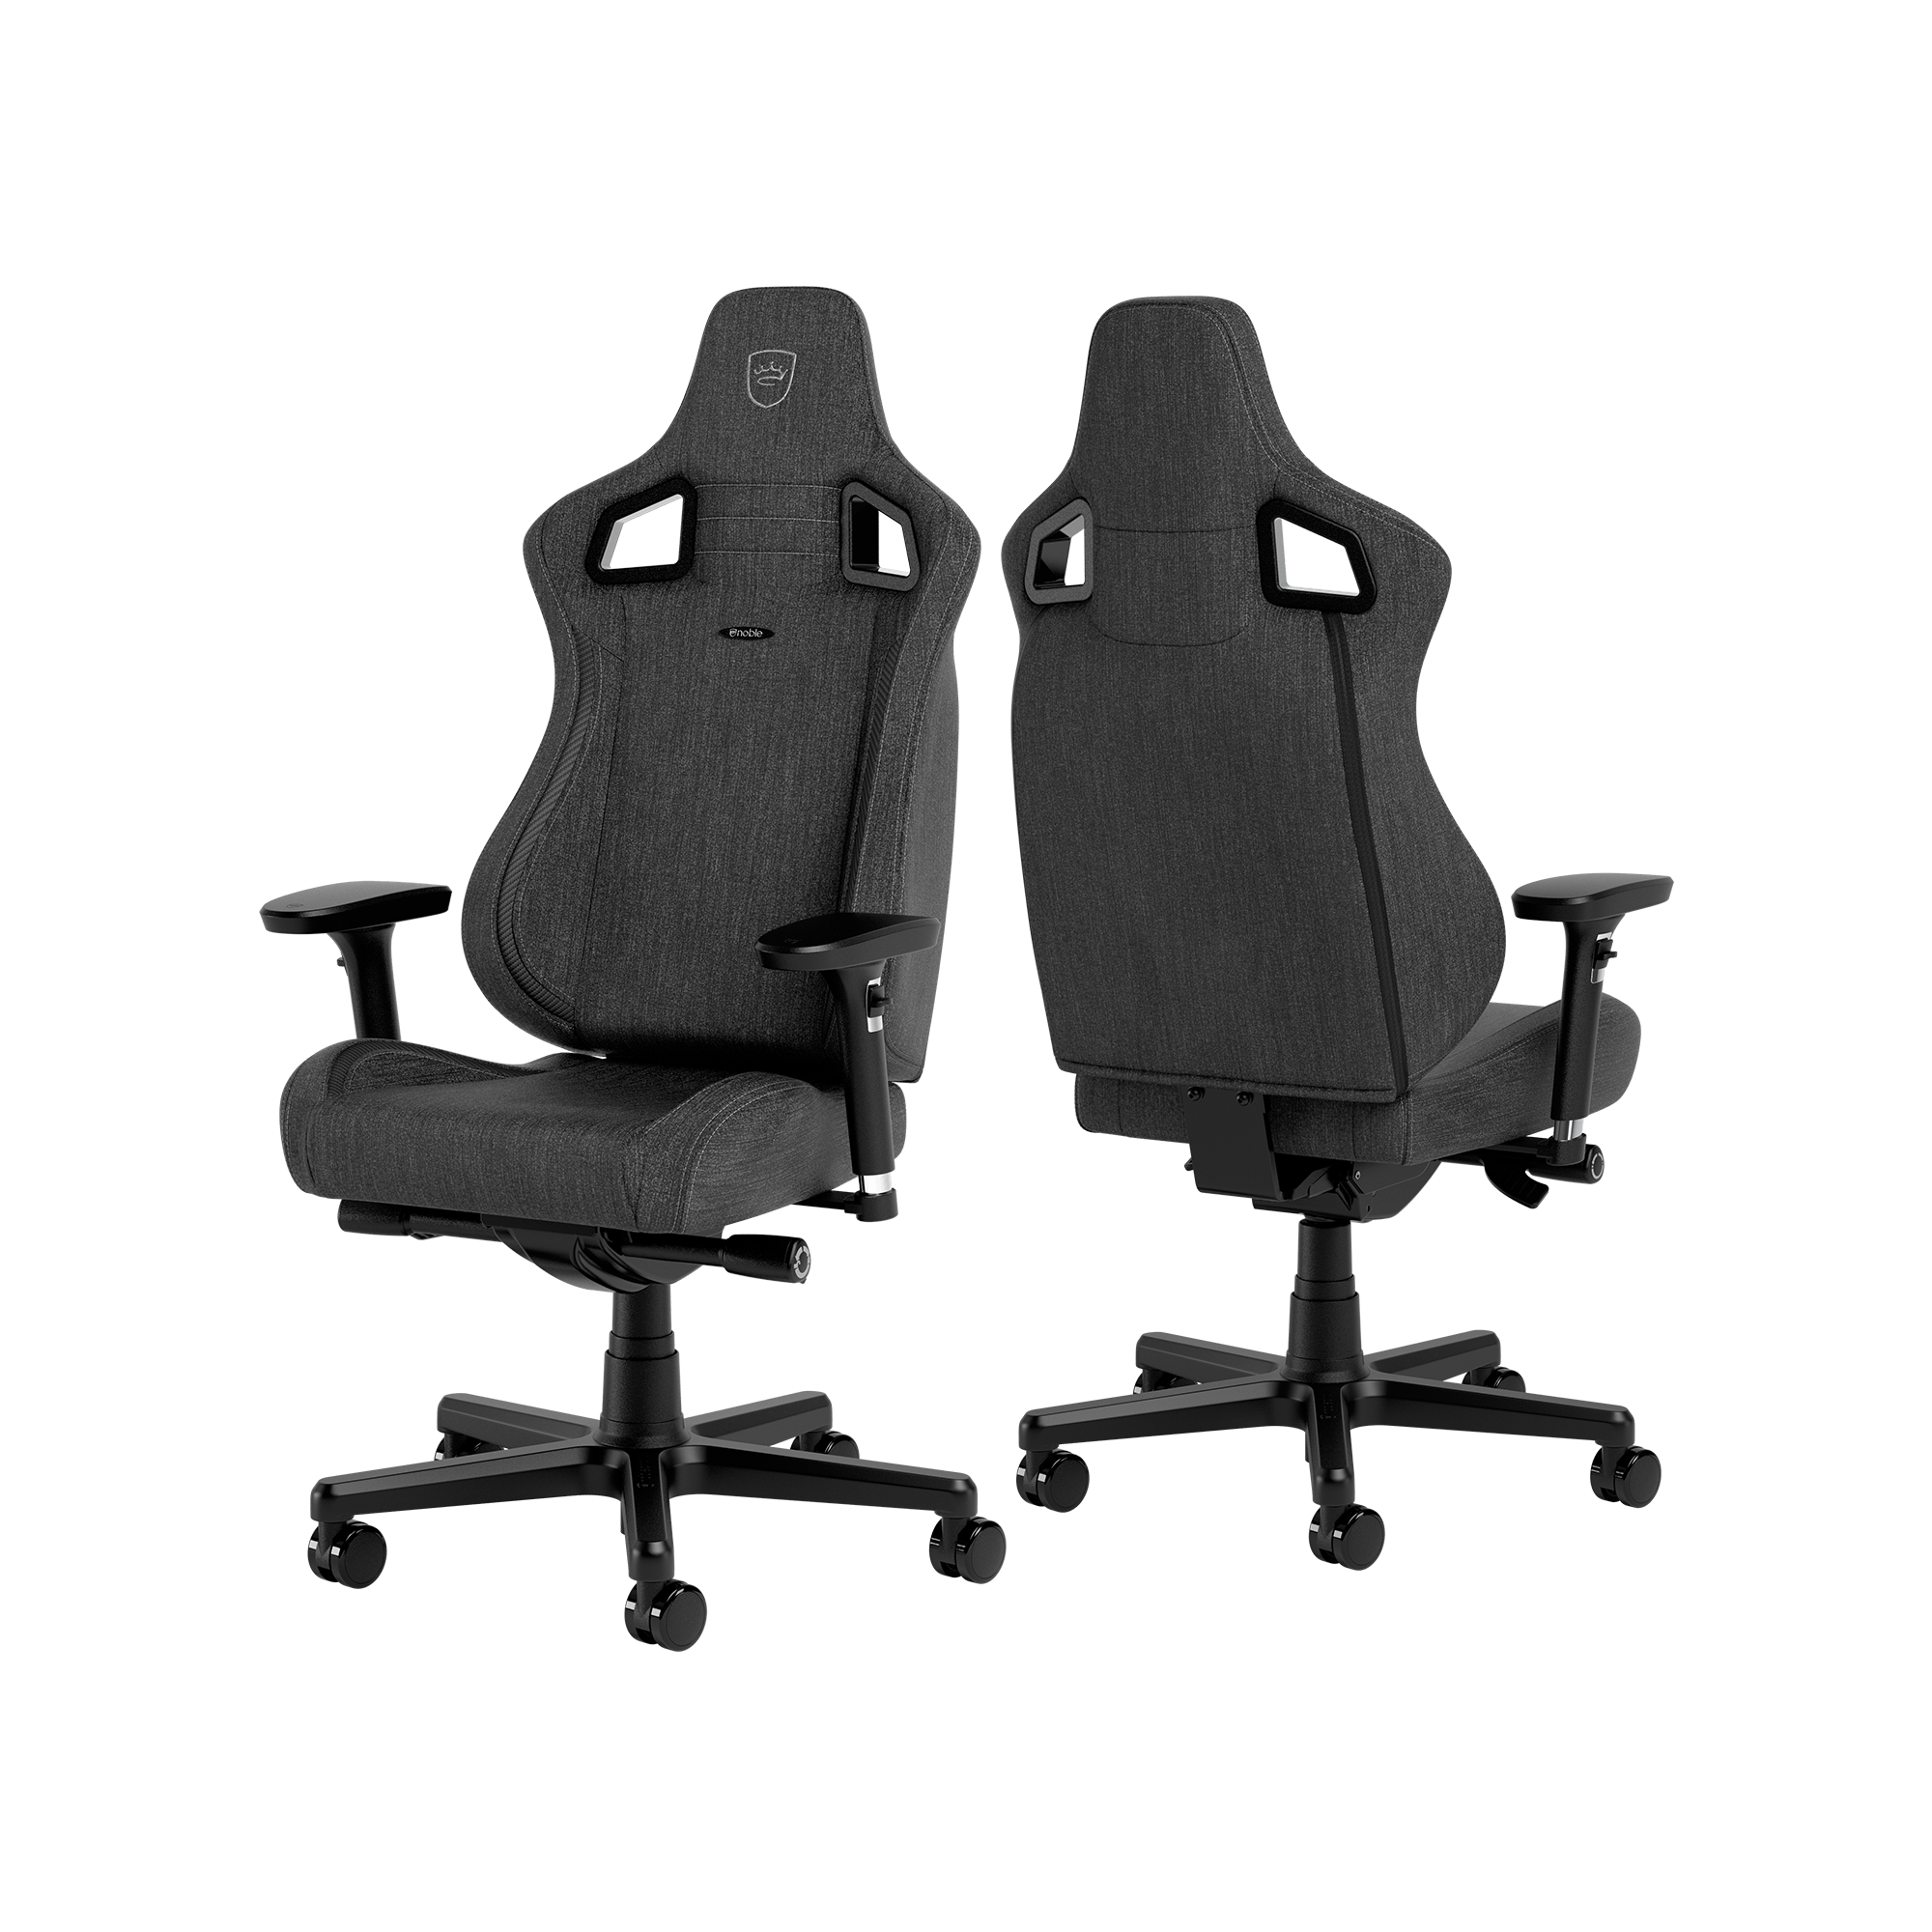 Noblechairs - EPIC Compact Anthracite/Carbon